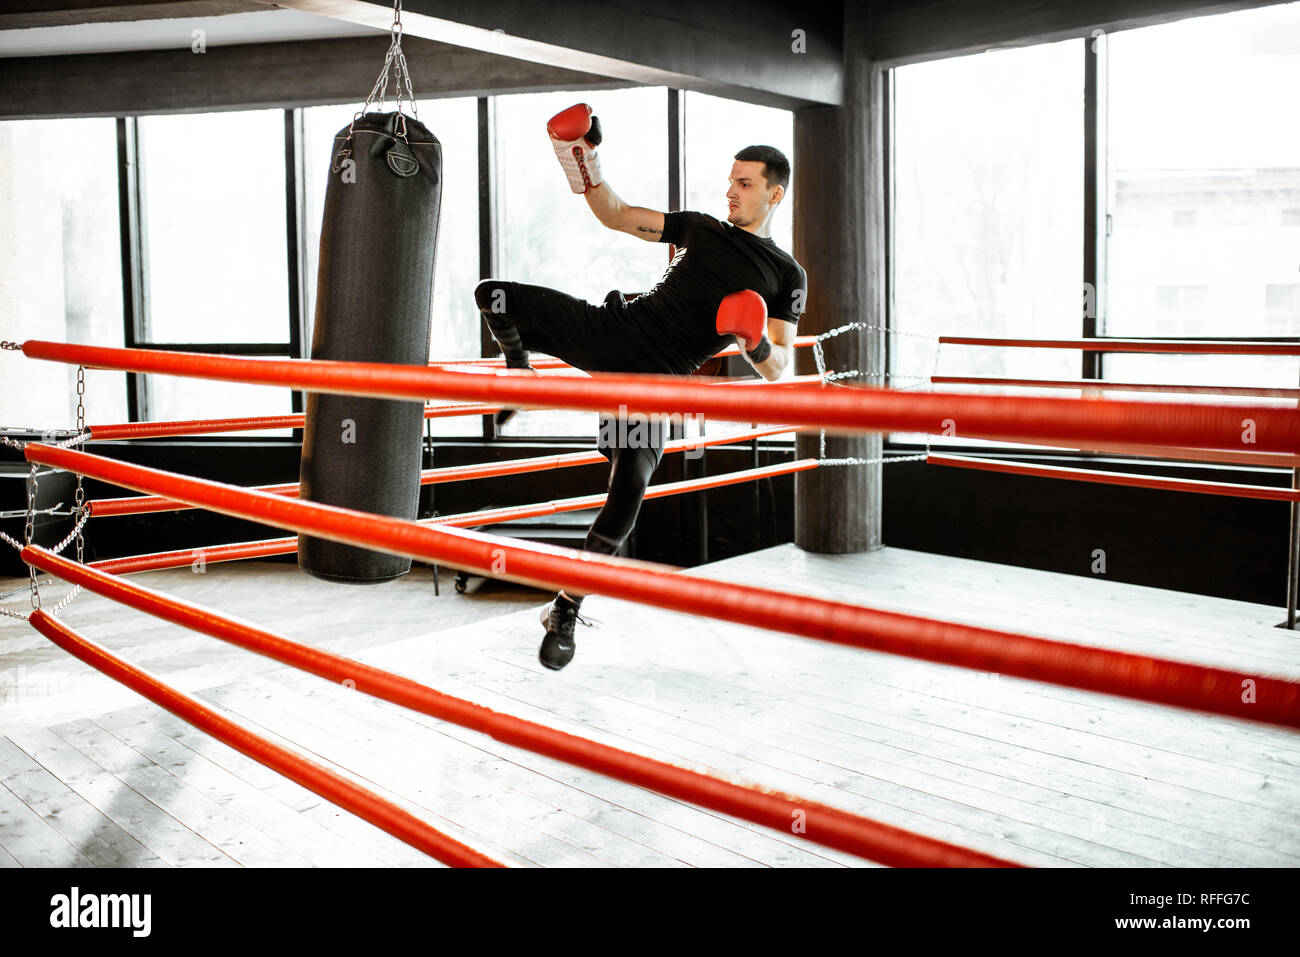 Athletic man kicking punching bag with leg, training kickboxing on the boxing ring at the gym - Stock Image